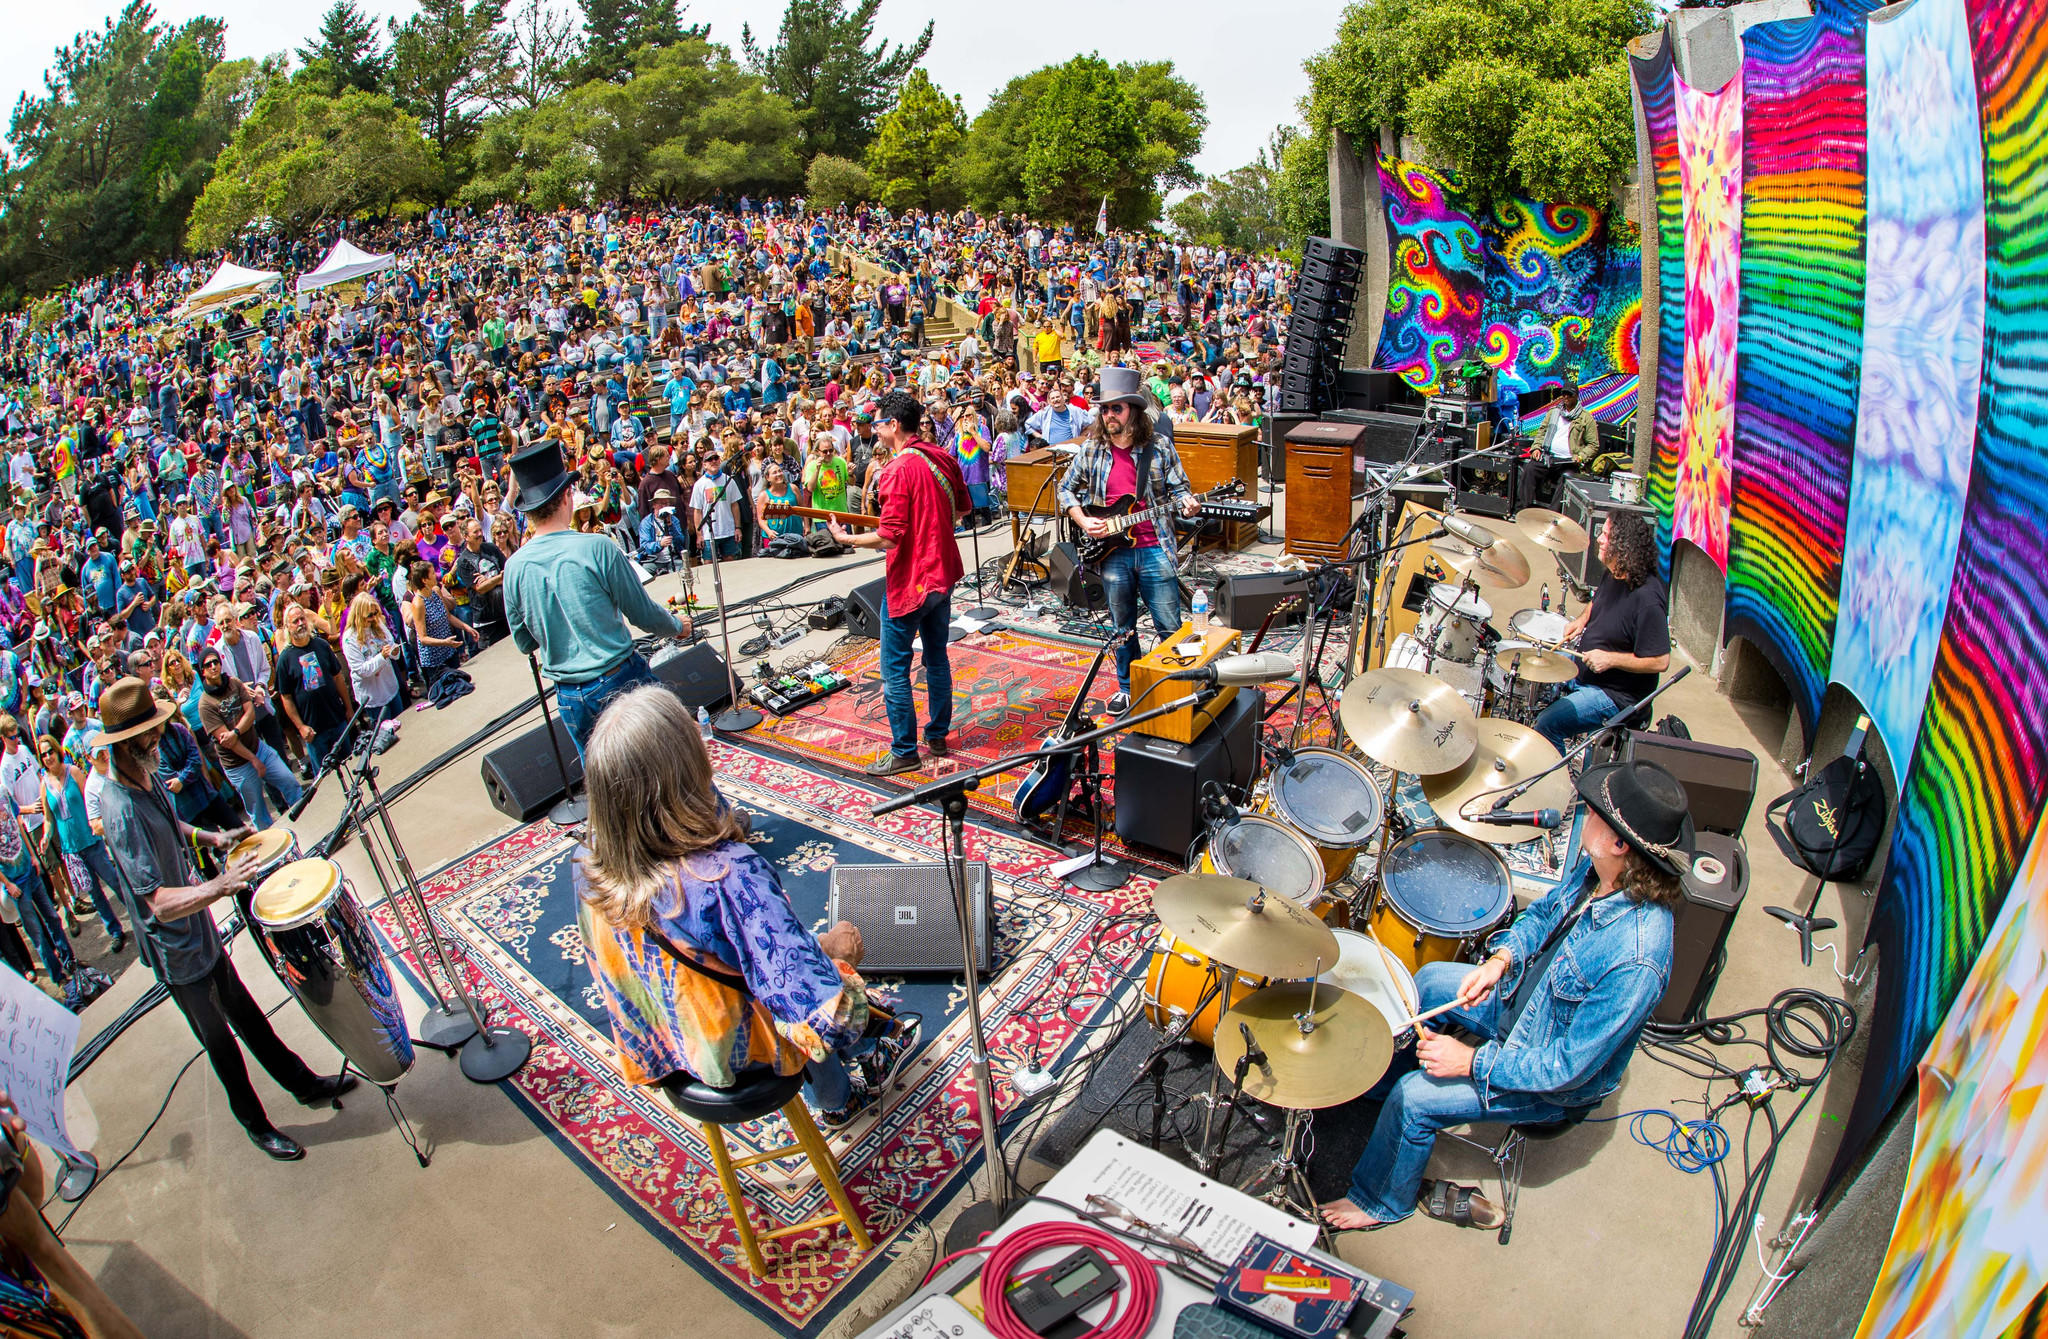 Jerry Day in 2014. This year Jerry Day celebrates the 75th anniversary of Jerry Garcia's birth at the Jerry Garcia Amphitheater in McLaren Park, near where the mellow Grateful Dead leader grew up. It also celebrates the 50th anniversary of the Summer of Love.